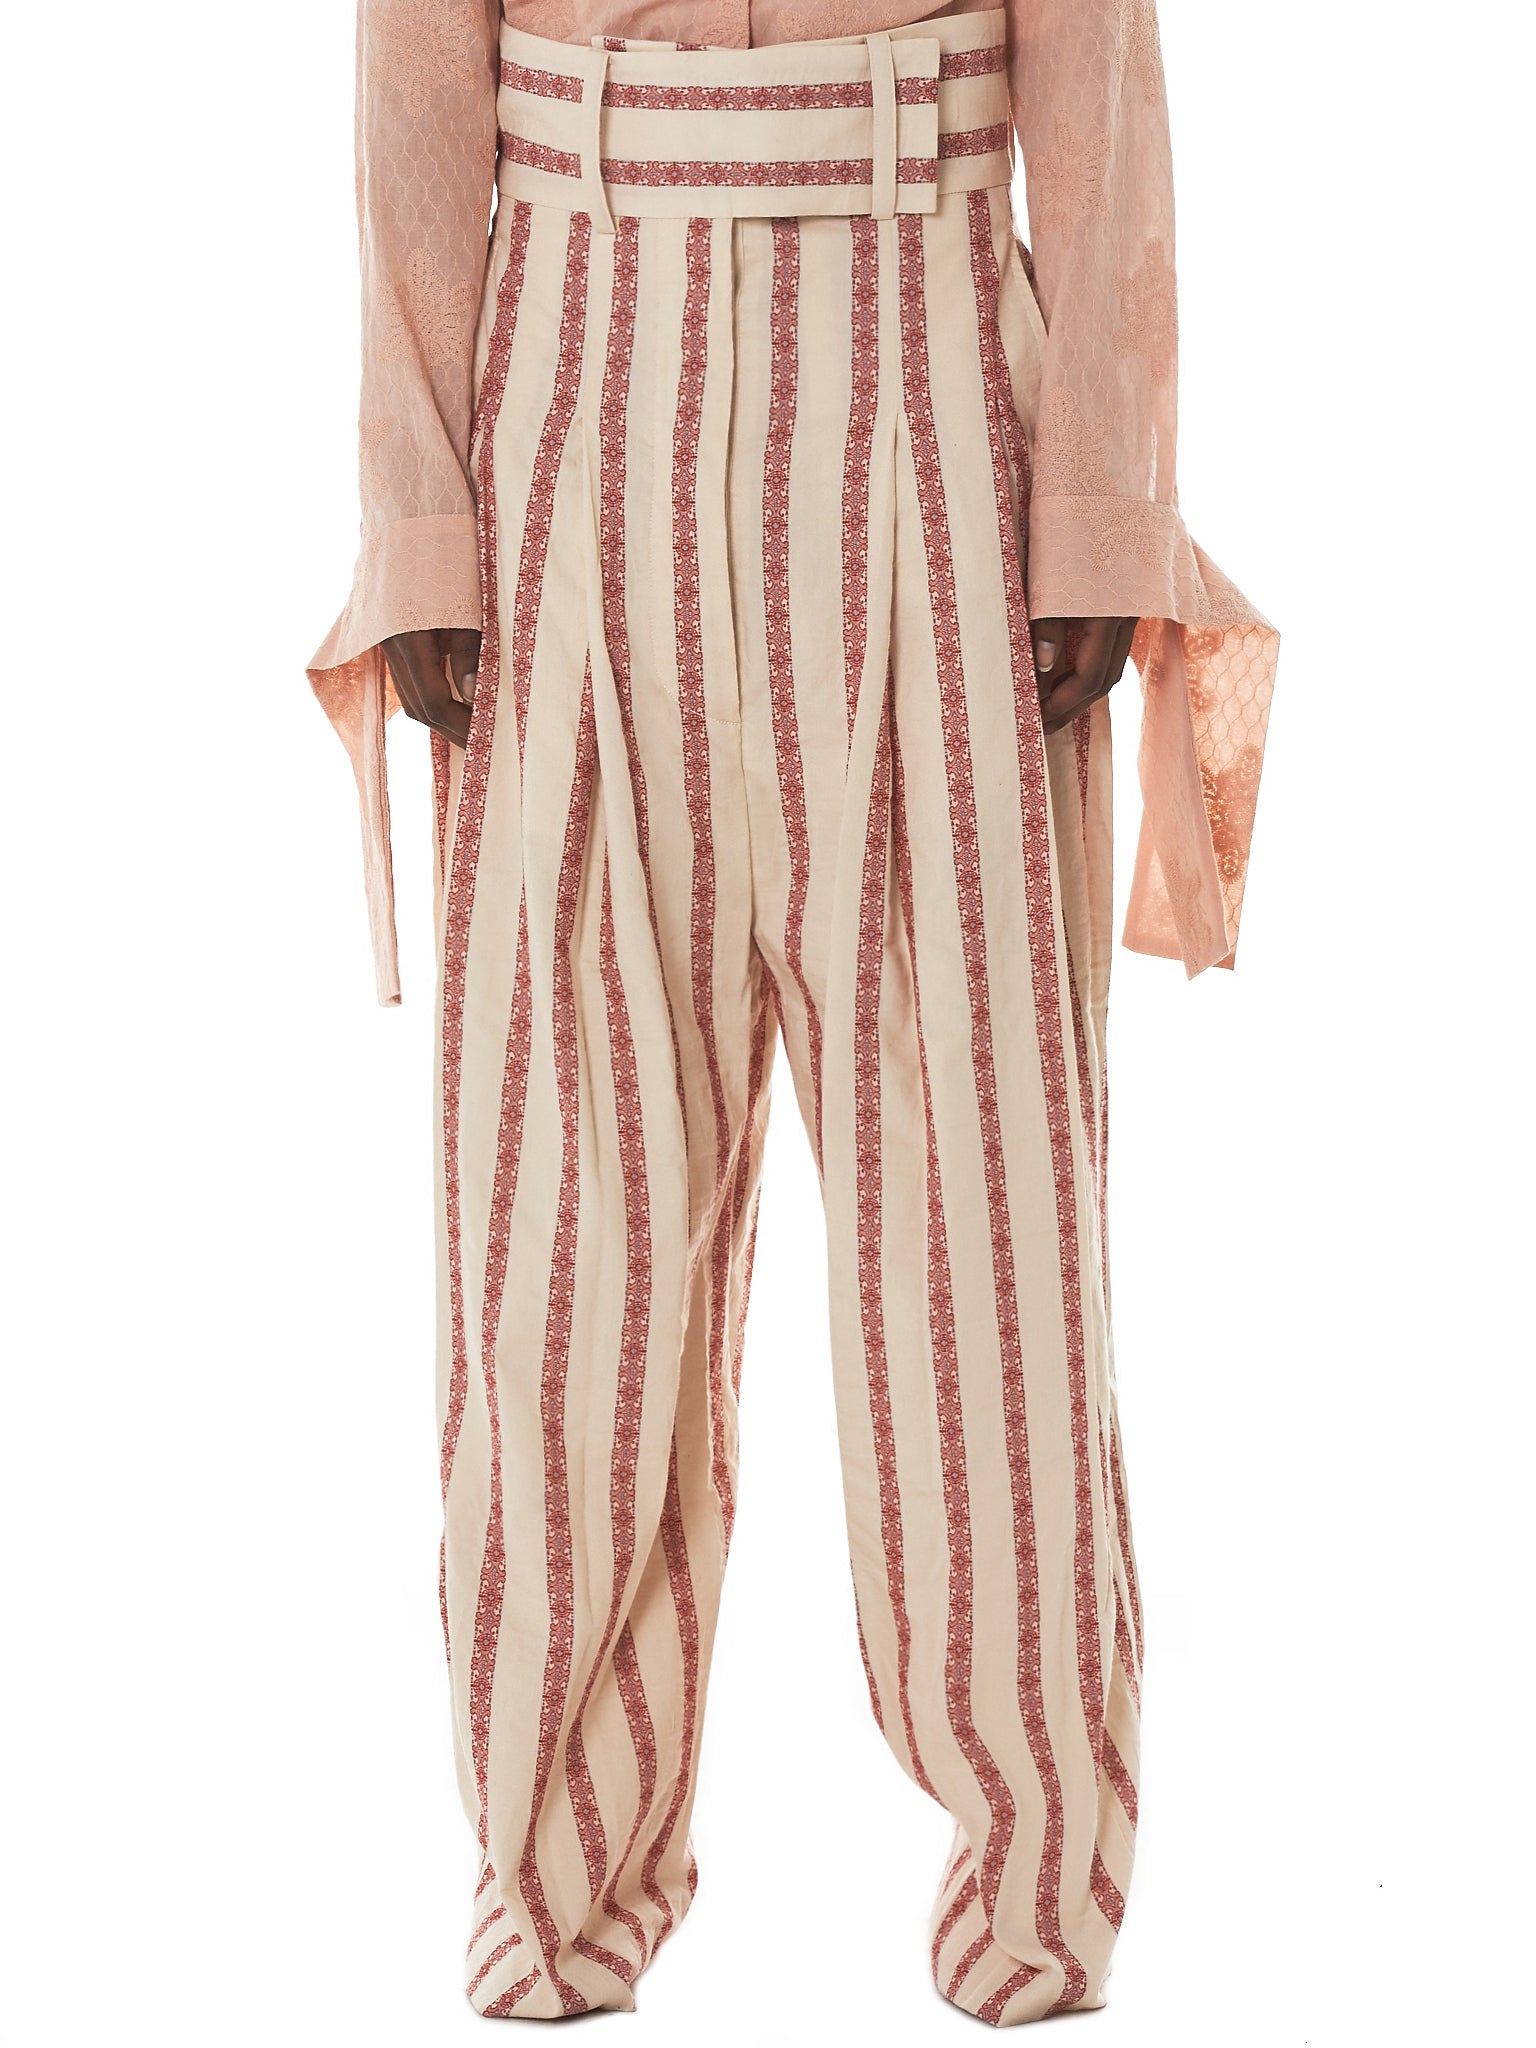 Daniel Gregory Natale Striped Trousers - Hlorenzo Front